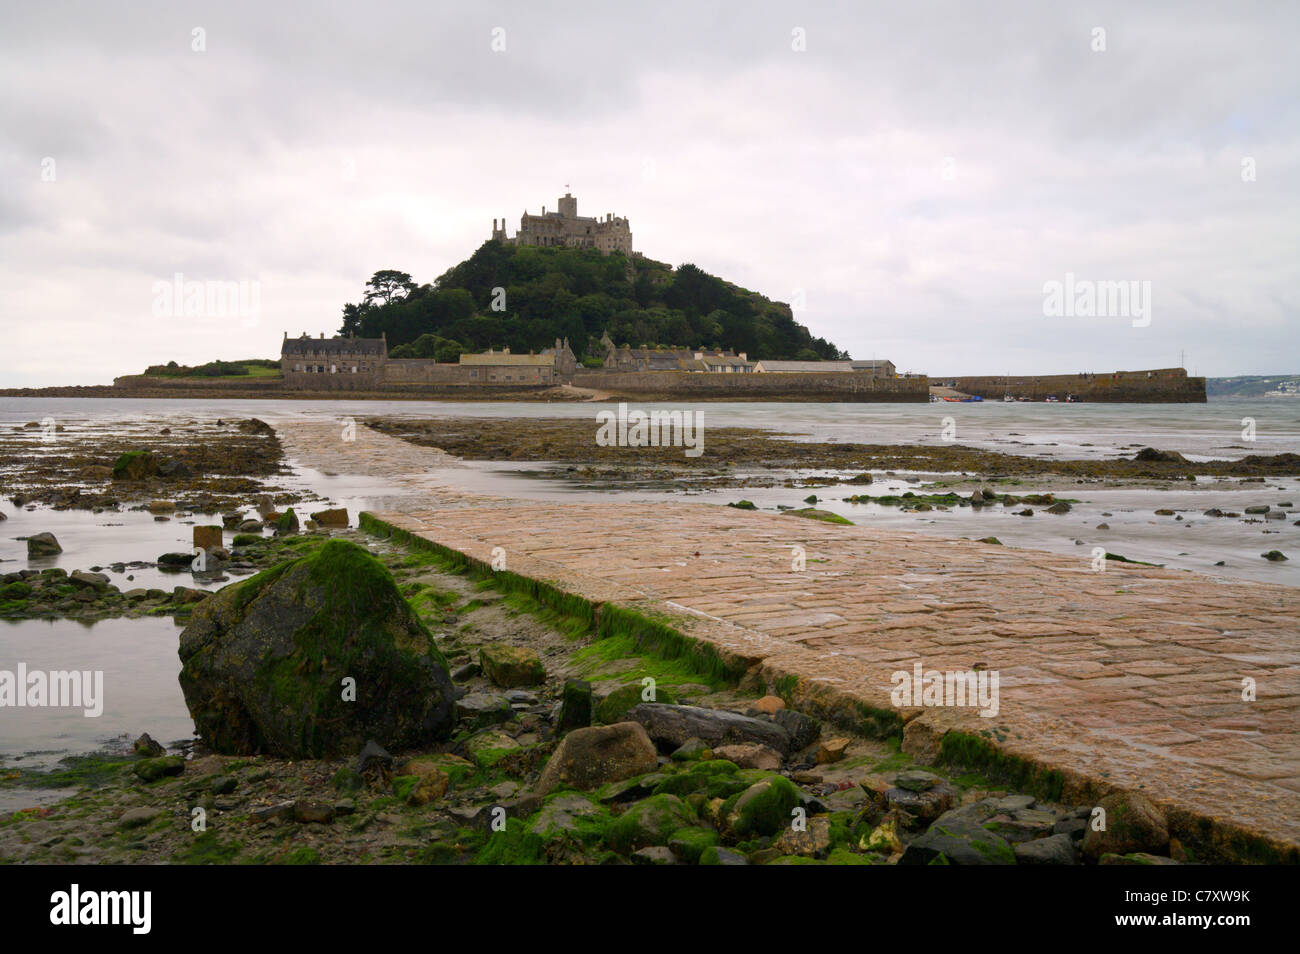 St Michaels Mount, Tide out revealing the causeway, Cornwall - Stock Image